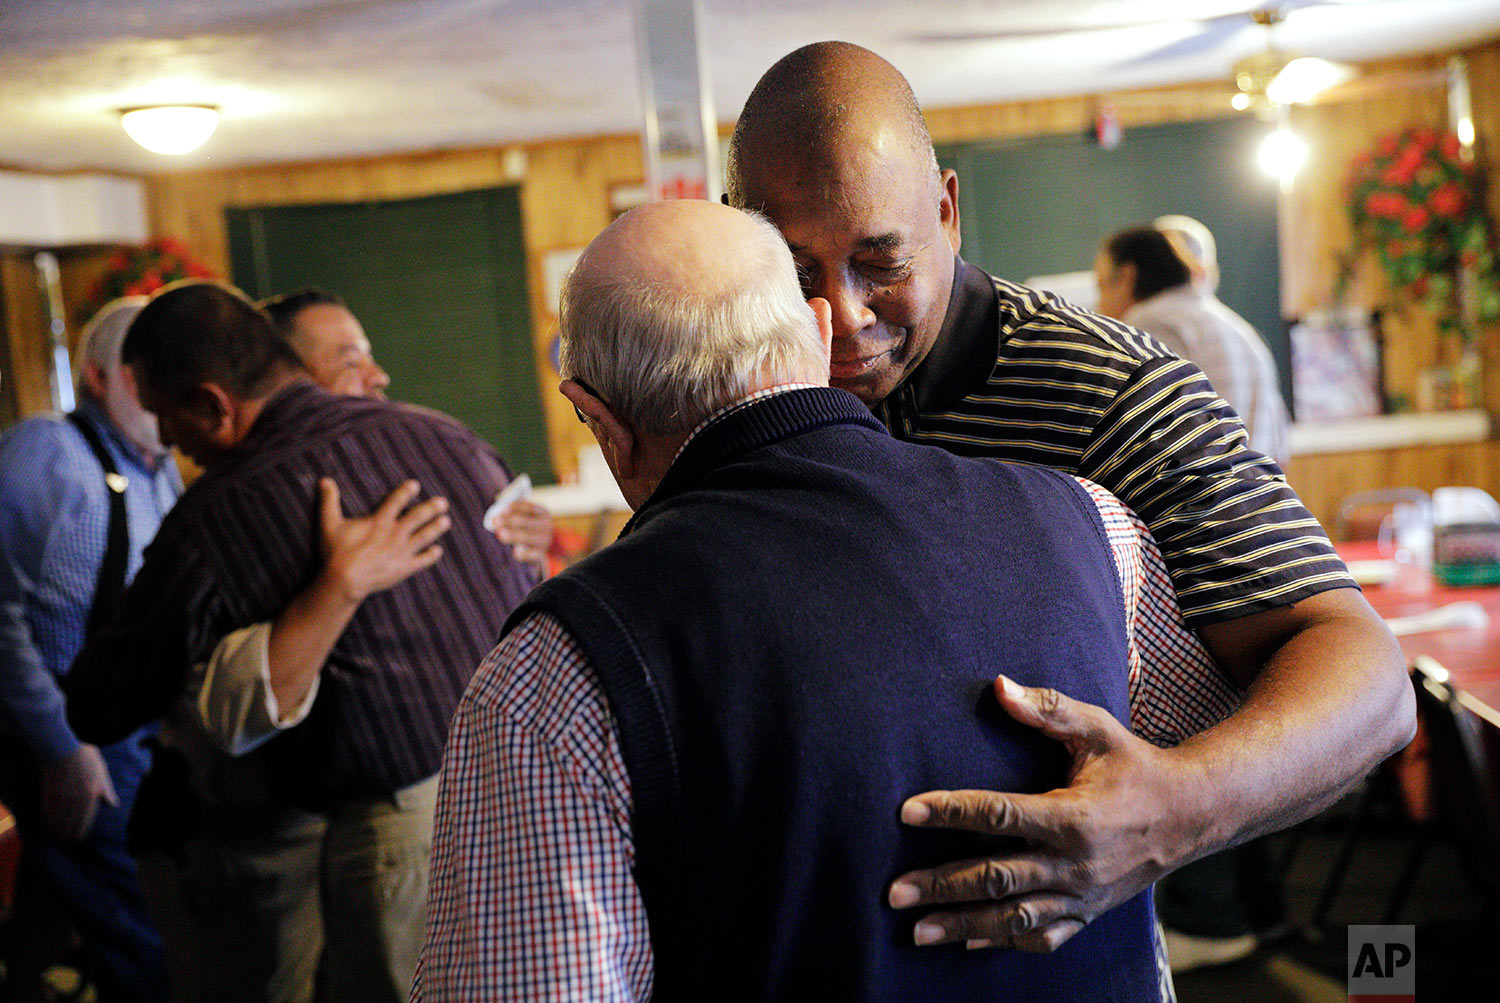 """Walker Davis, right, embraces Bobby Martin at a prayer breakfast at a diner in Lumberton, N.C., Saturday, Oct. 28, 2017. """"We love this isolation because we're comfortable but the lord didn't send Jesus to make us comfortable. Jesus came to change our mindsets,"""" said Davis speaking before the weekly meeting made up of whites, blacks and Native Americans. """"It's a unified body here but we're all from different walks of life and different ministries. This is why I love it here. This is truly a house united, not a house divided."""" (AP Photo/David Goldman)"""